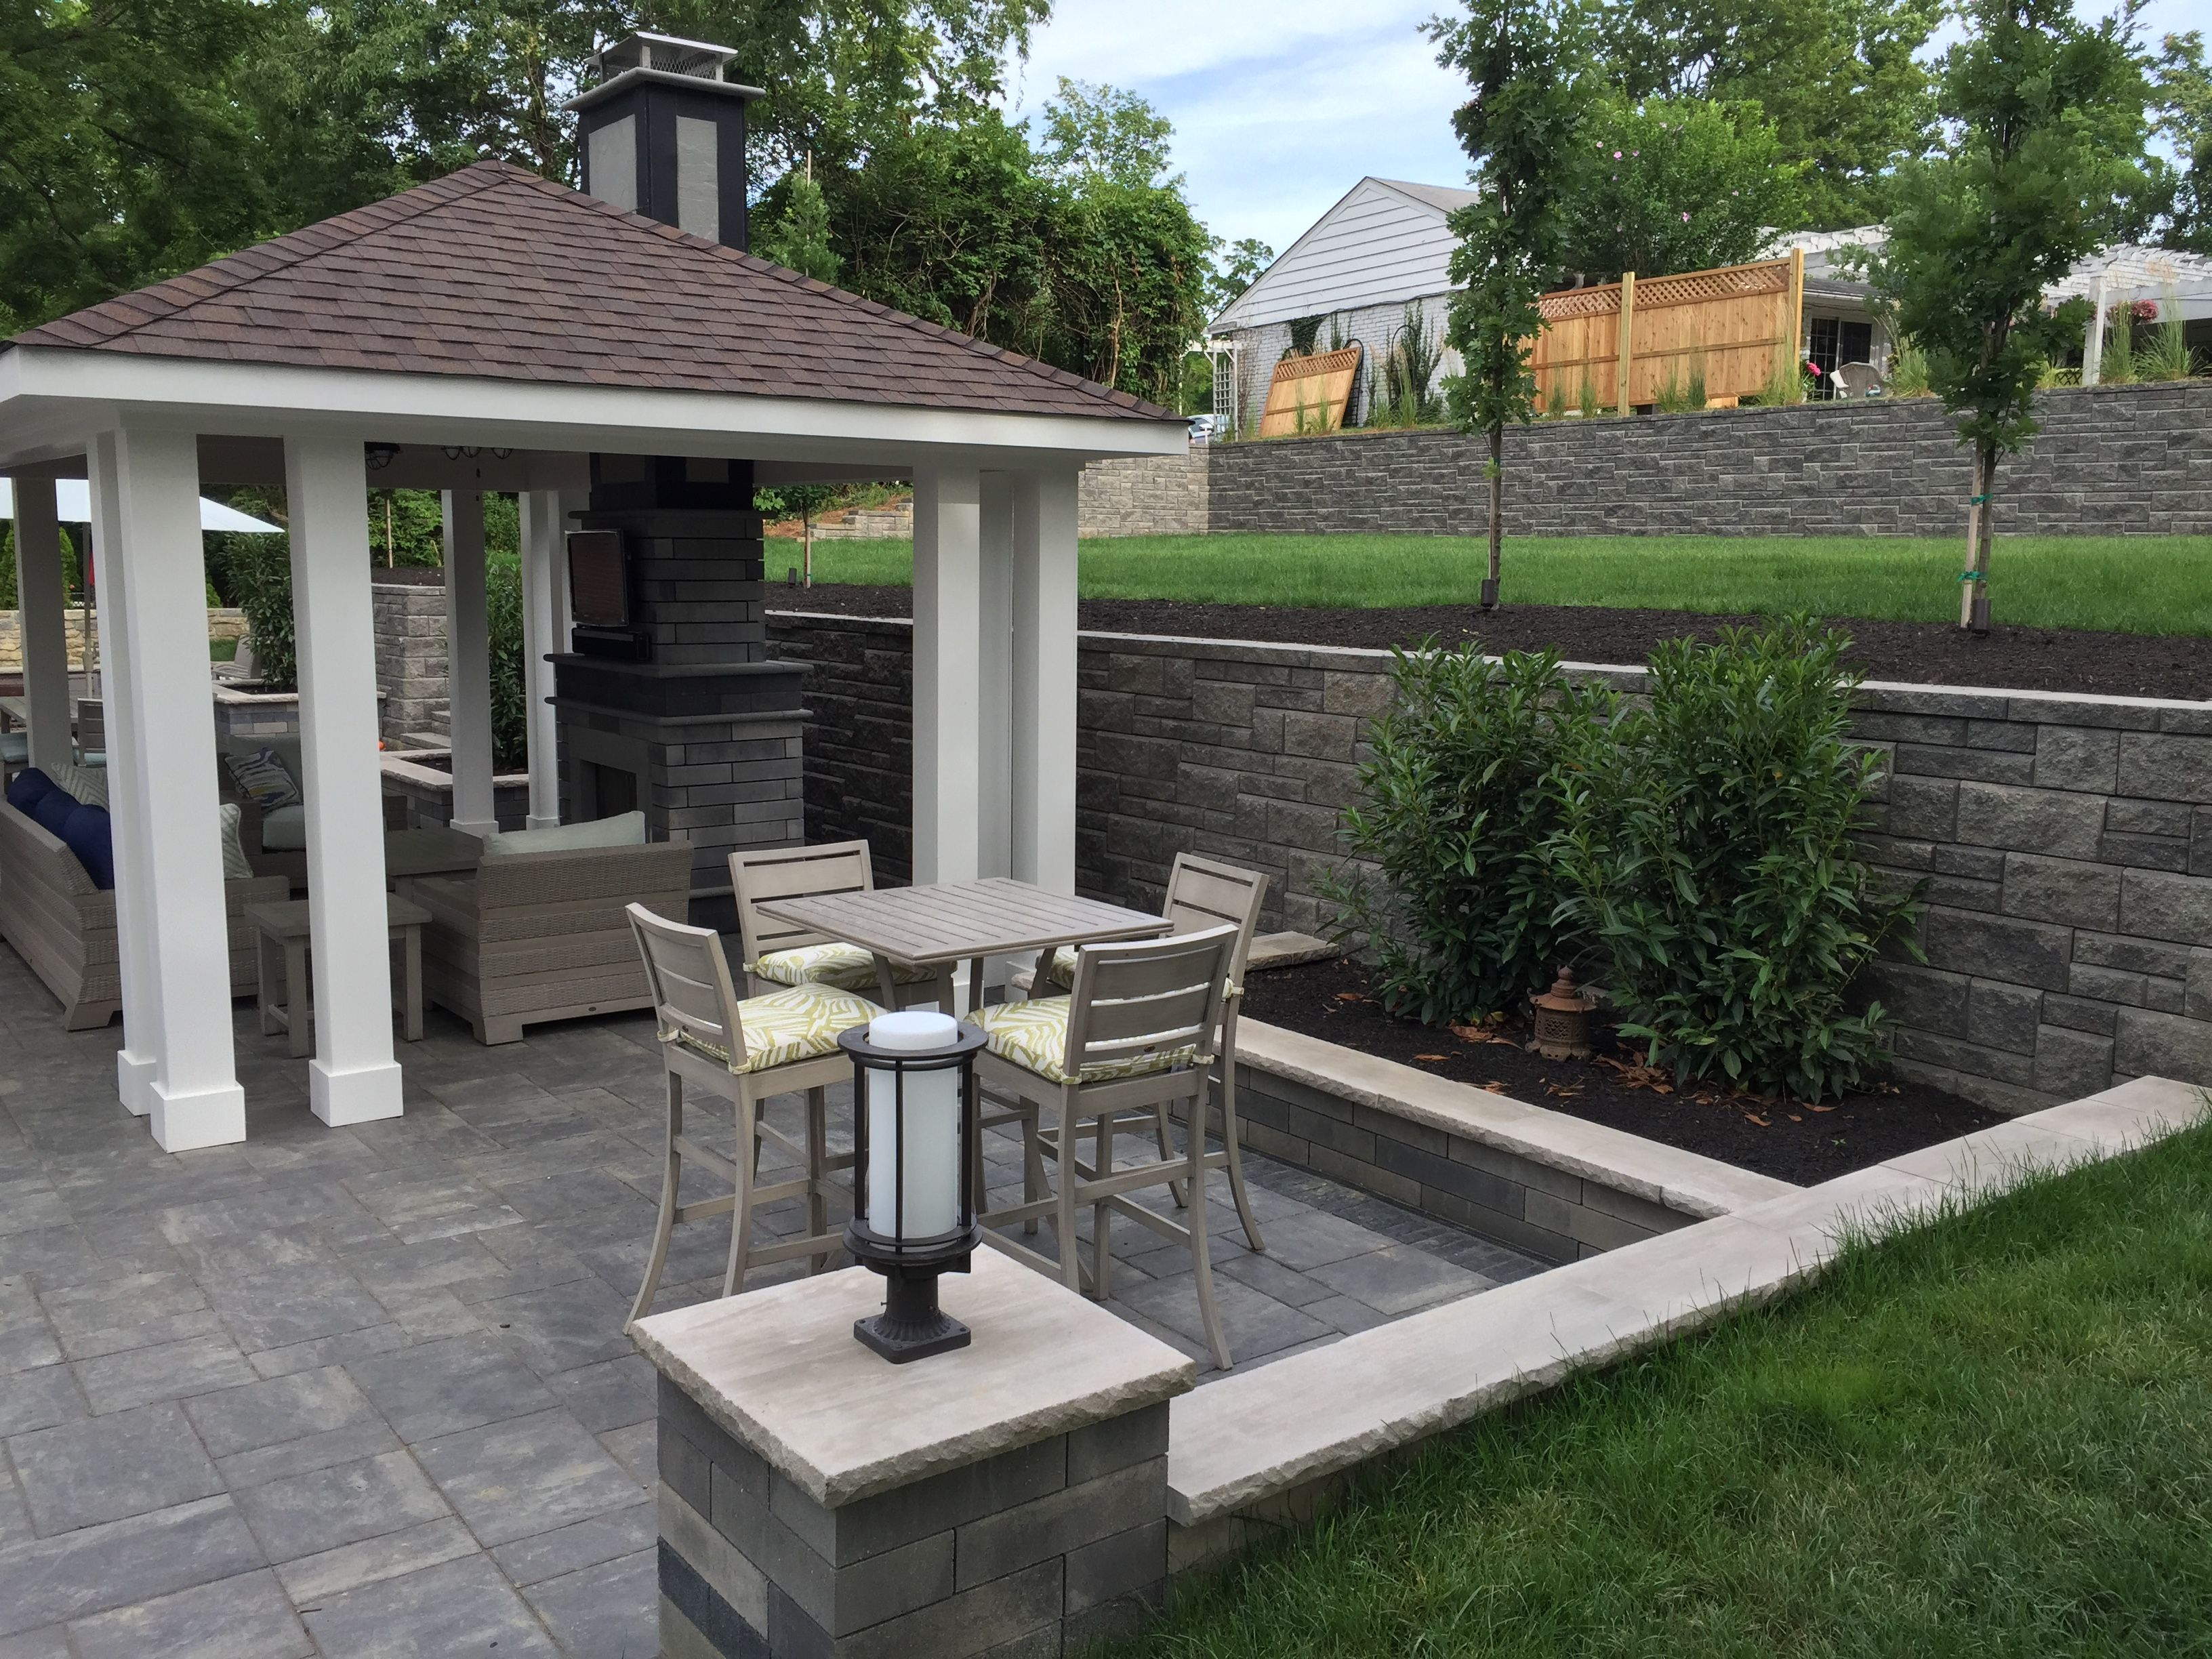 Bigger Backyard Enjoyment After Allan Block Retaining Walls Was Used To Expanded The Patio Patio Building A Patio Backyard Retaining Walls